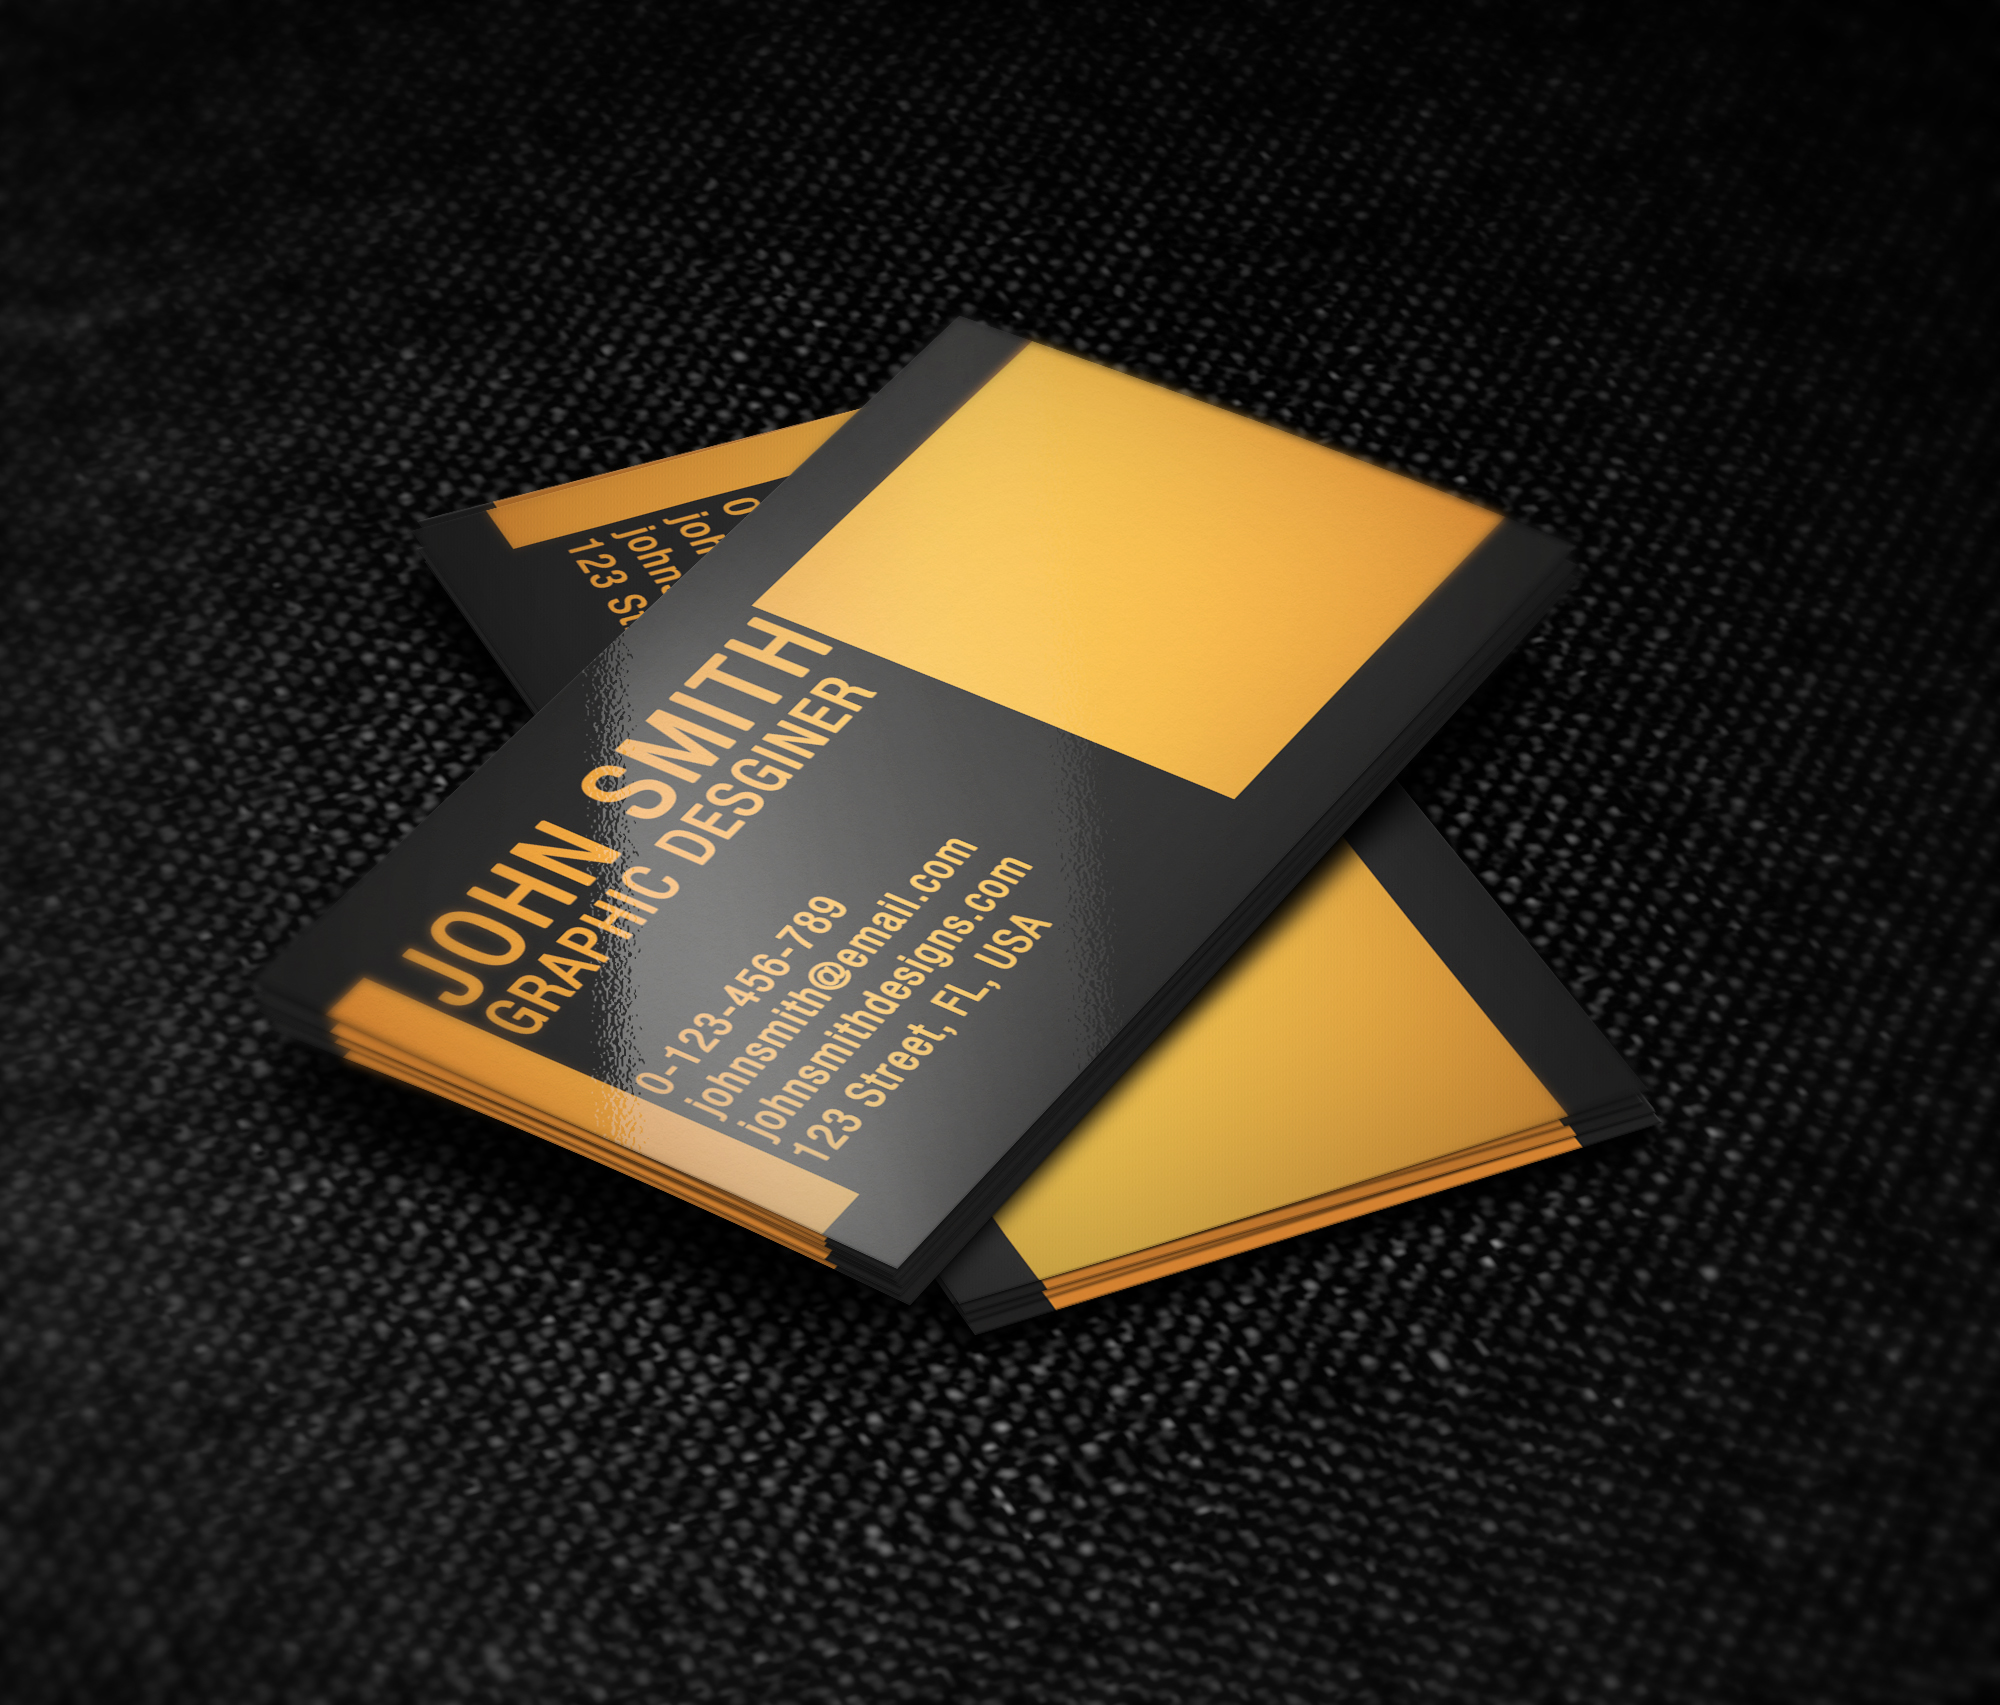 Black and orange business card template by nik1010 on deviantart black and orange business card template by nik1010 reheart Images